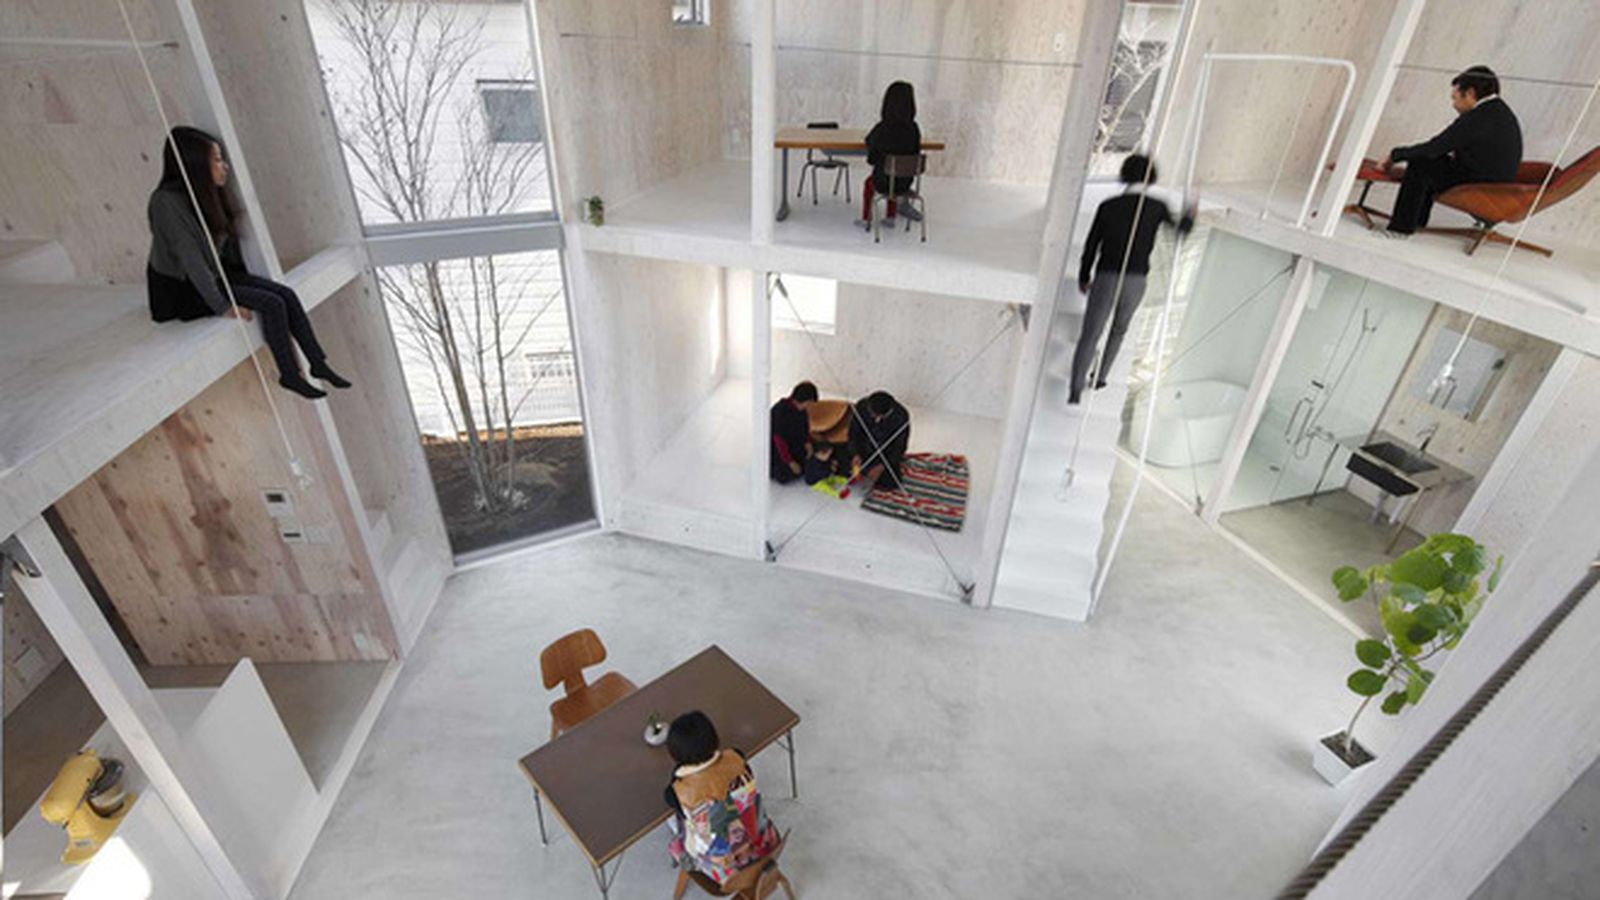 Could You Live in This Intentionally Wall-Free House? - Curbed